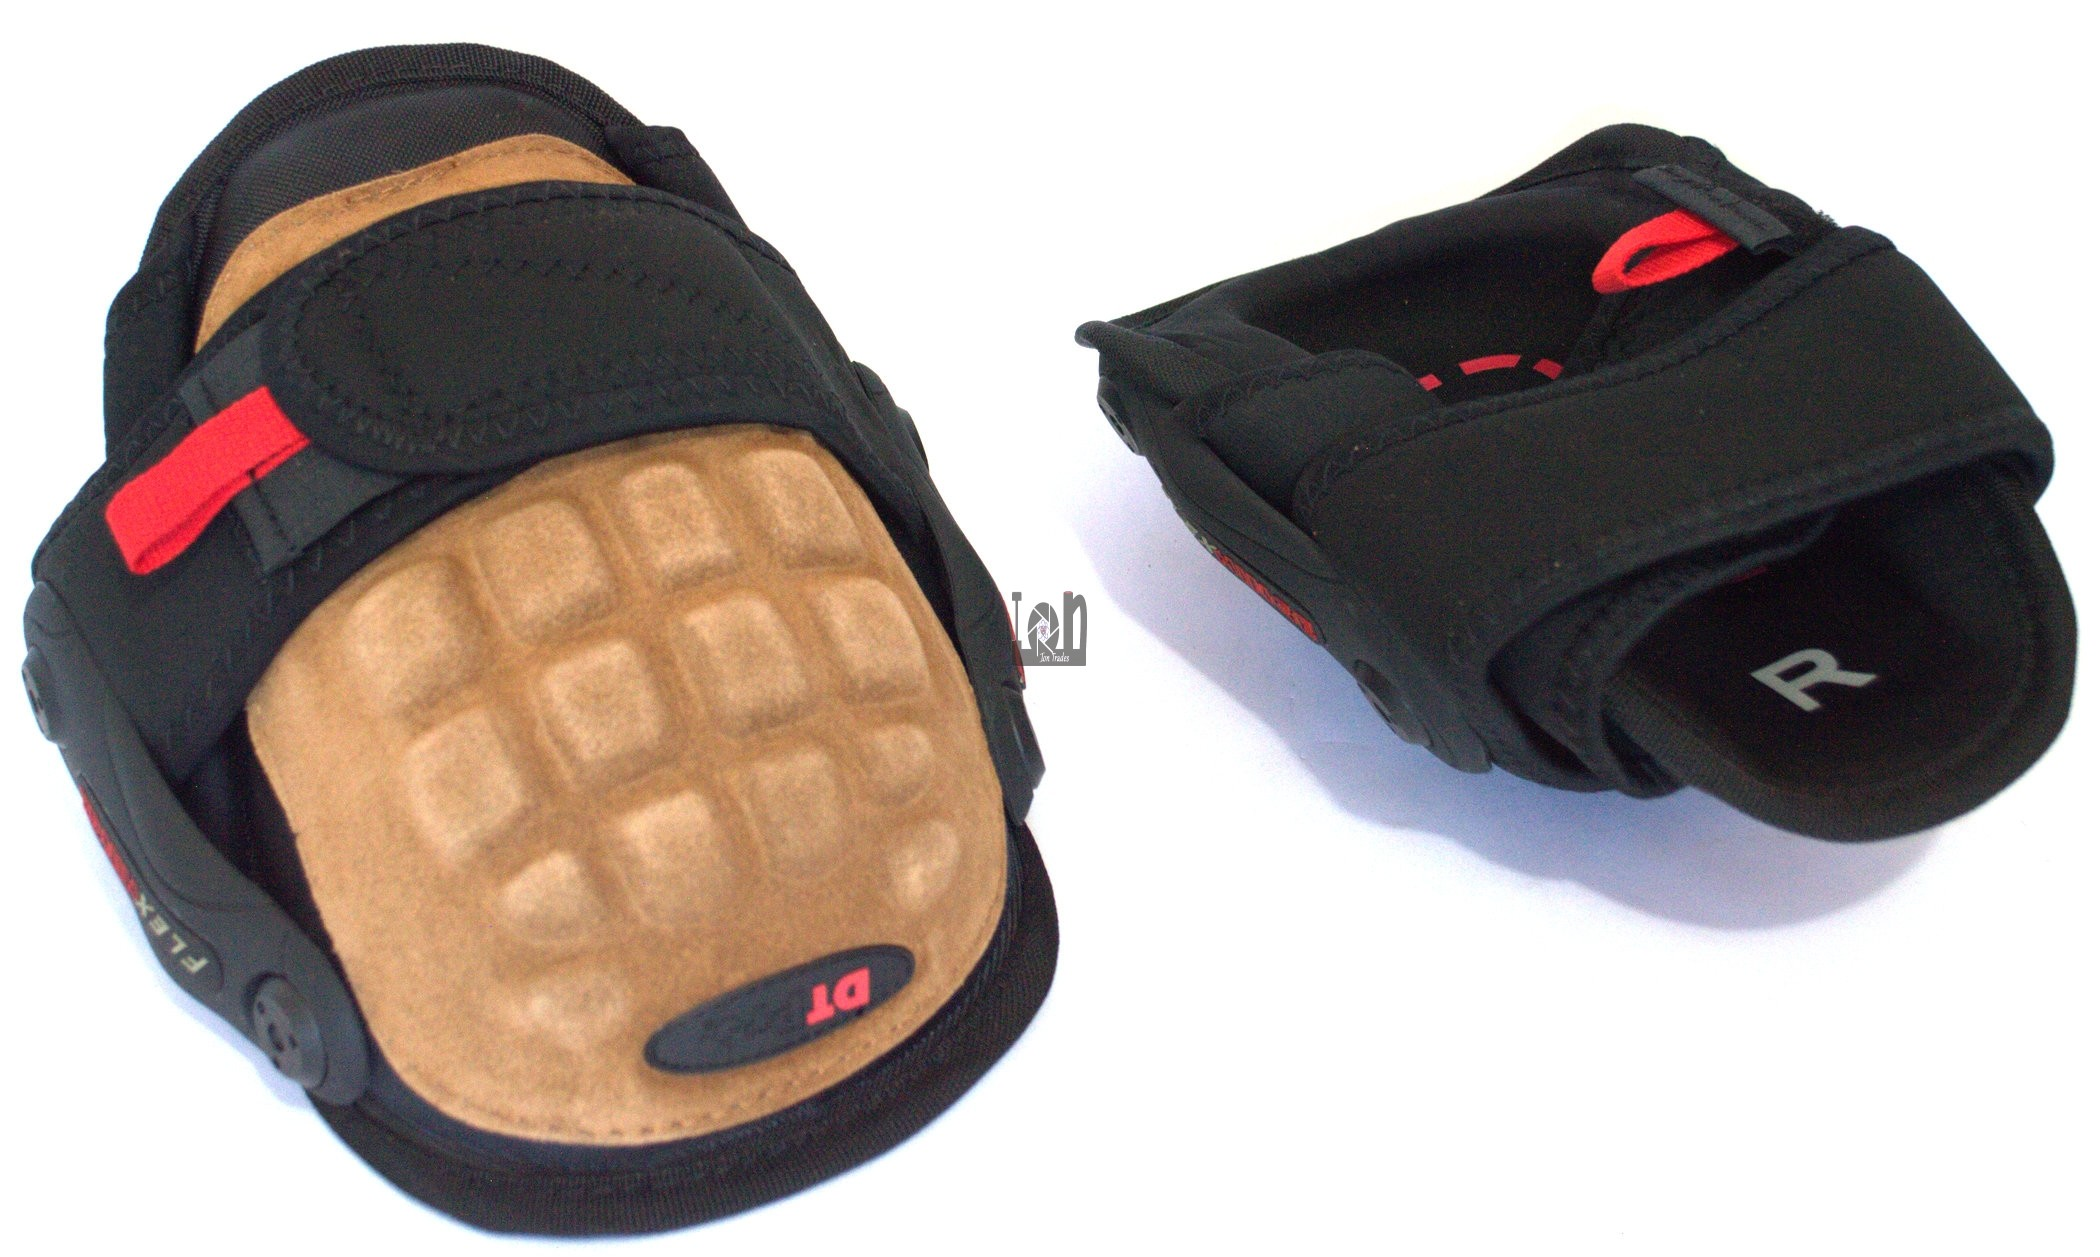 Duluth Trading Co Hinged Knee Pads 58030 Gel Leather Black